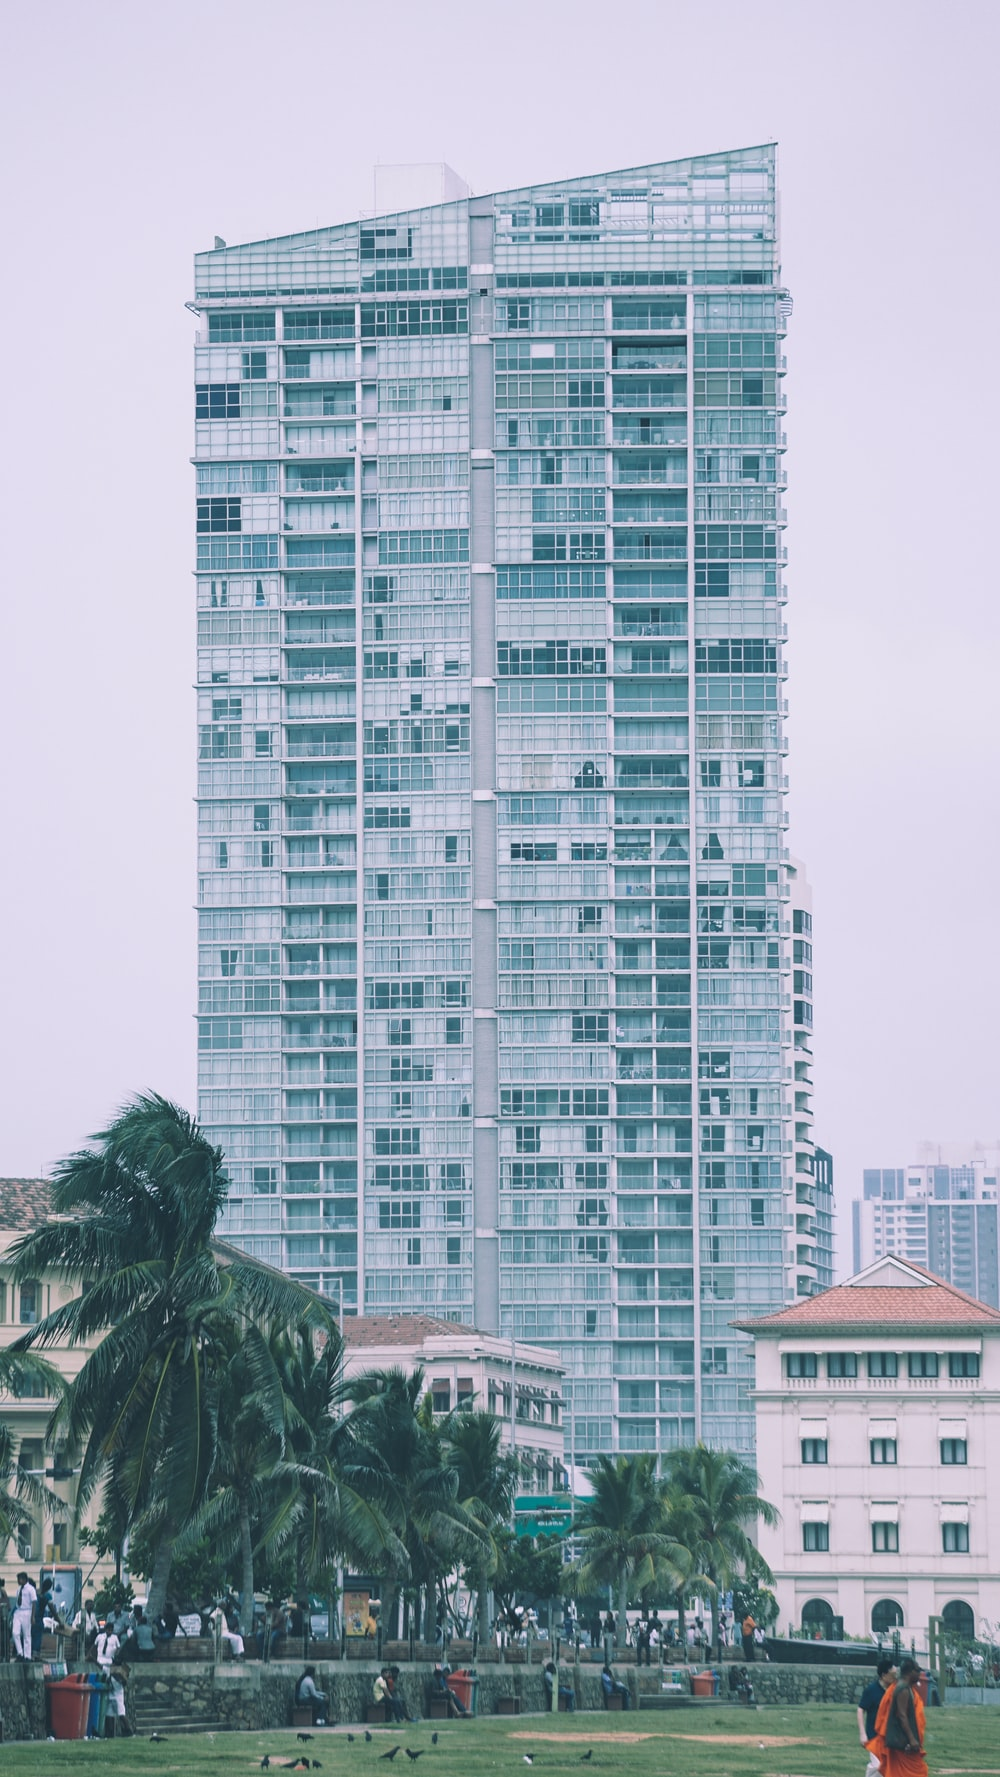 low angle photo of gray high-rise building